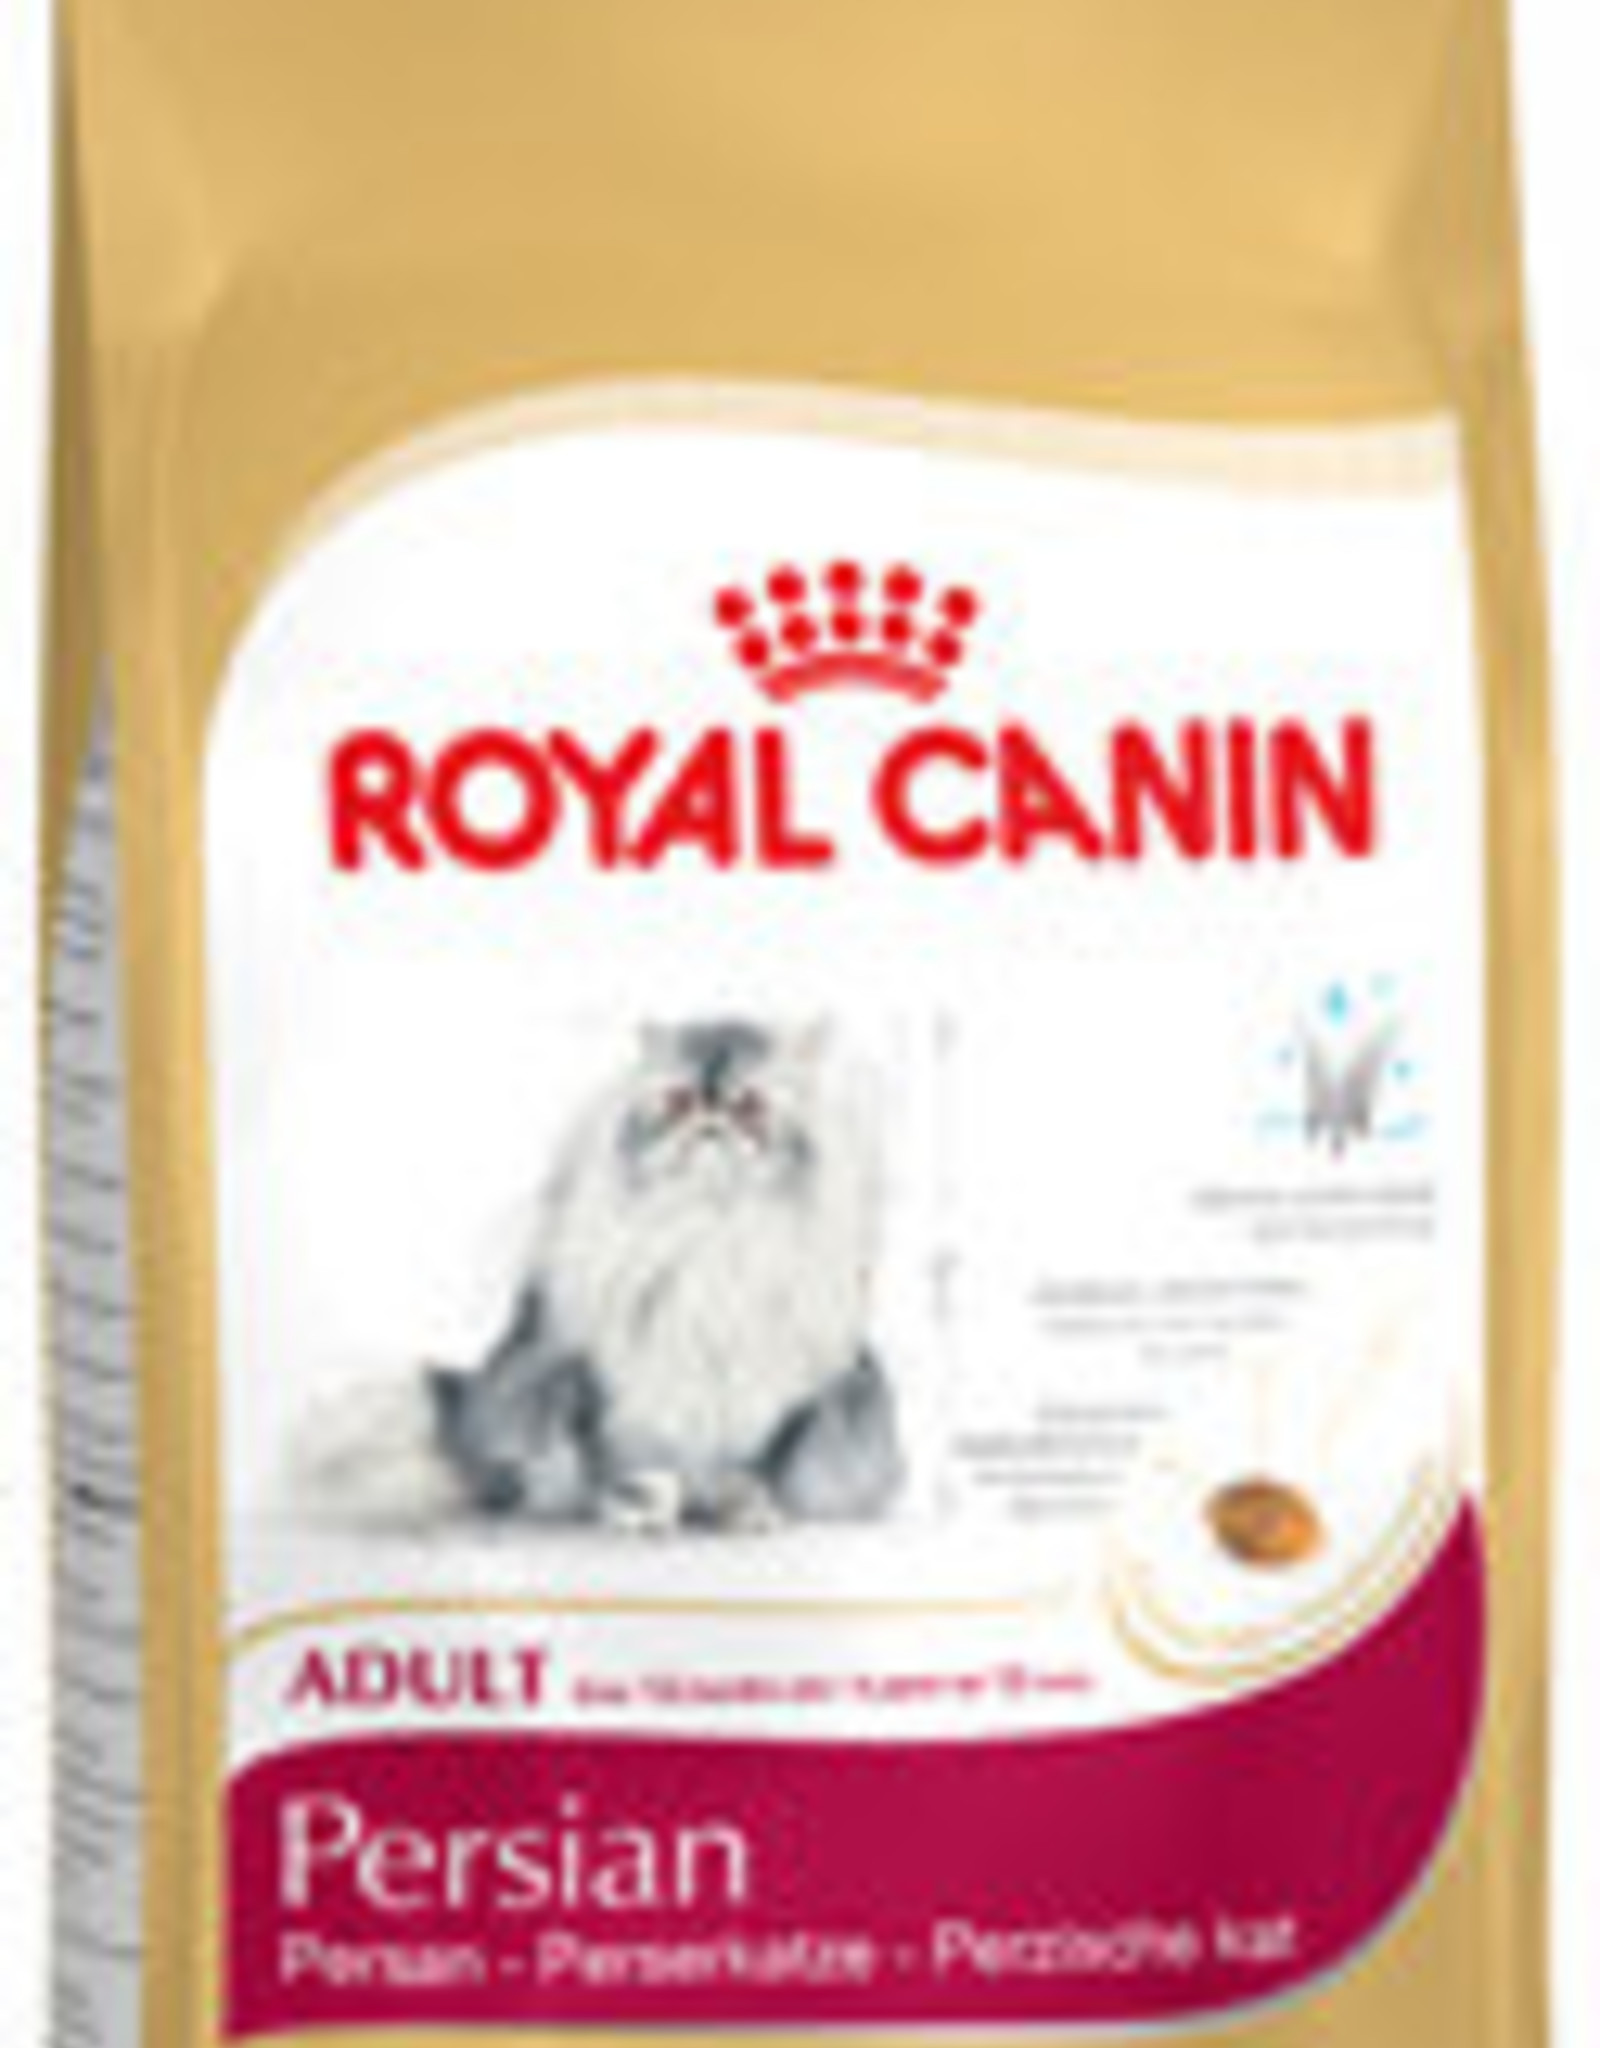 Royal Canin Royal Canin Fbn Persian 30 400gr